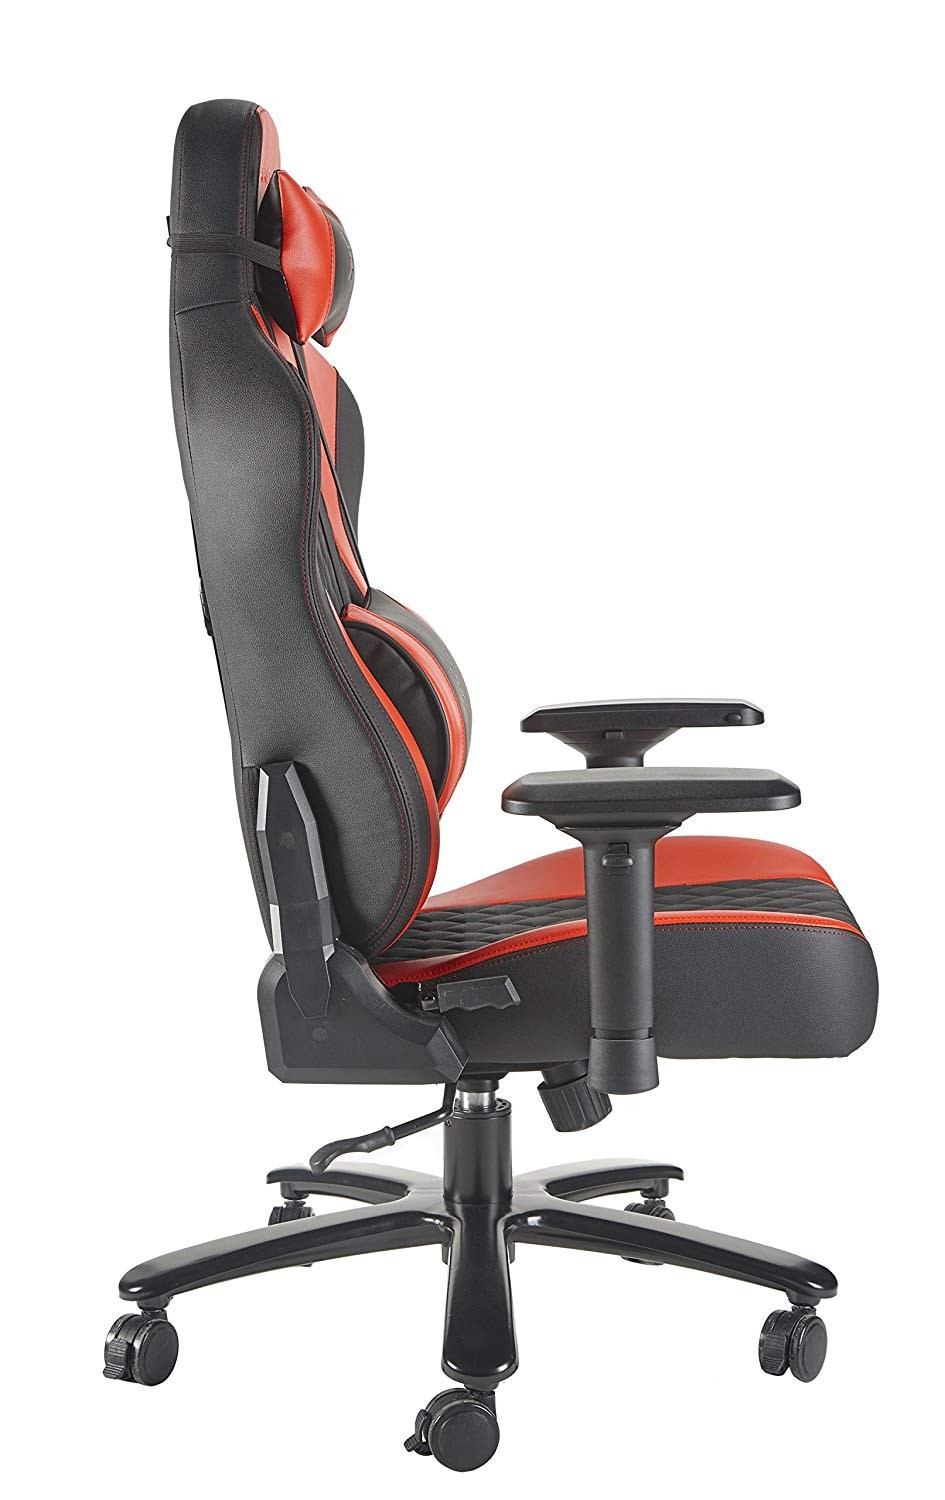 X Rocker Xl Delta Pro Series Gaming Chair Black Red